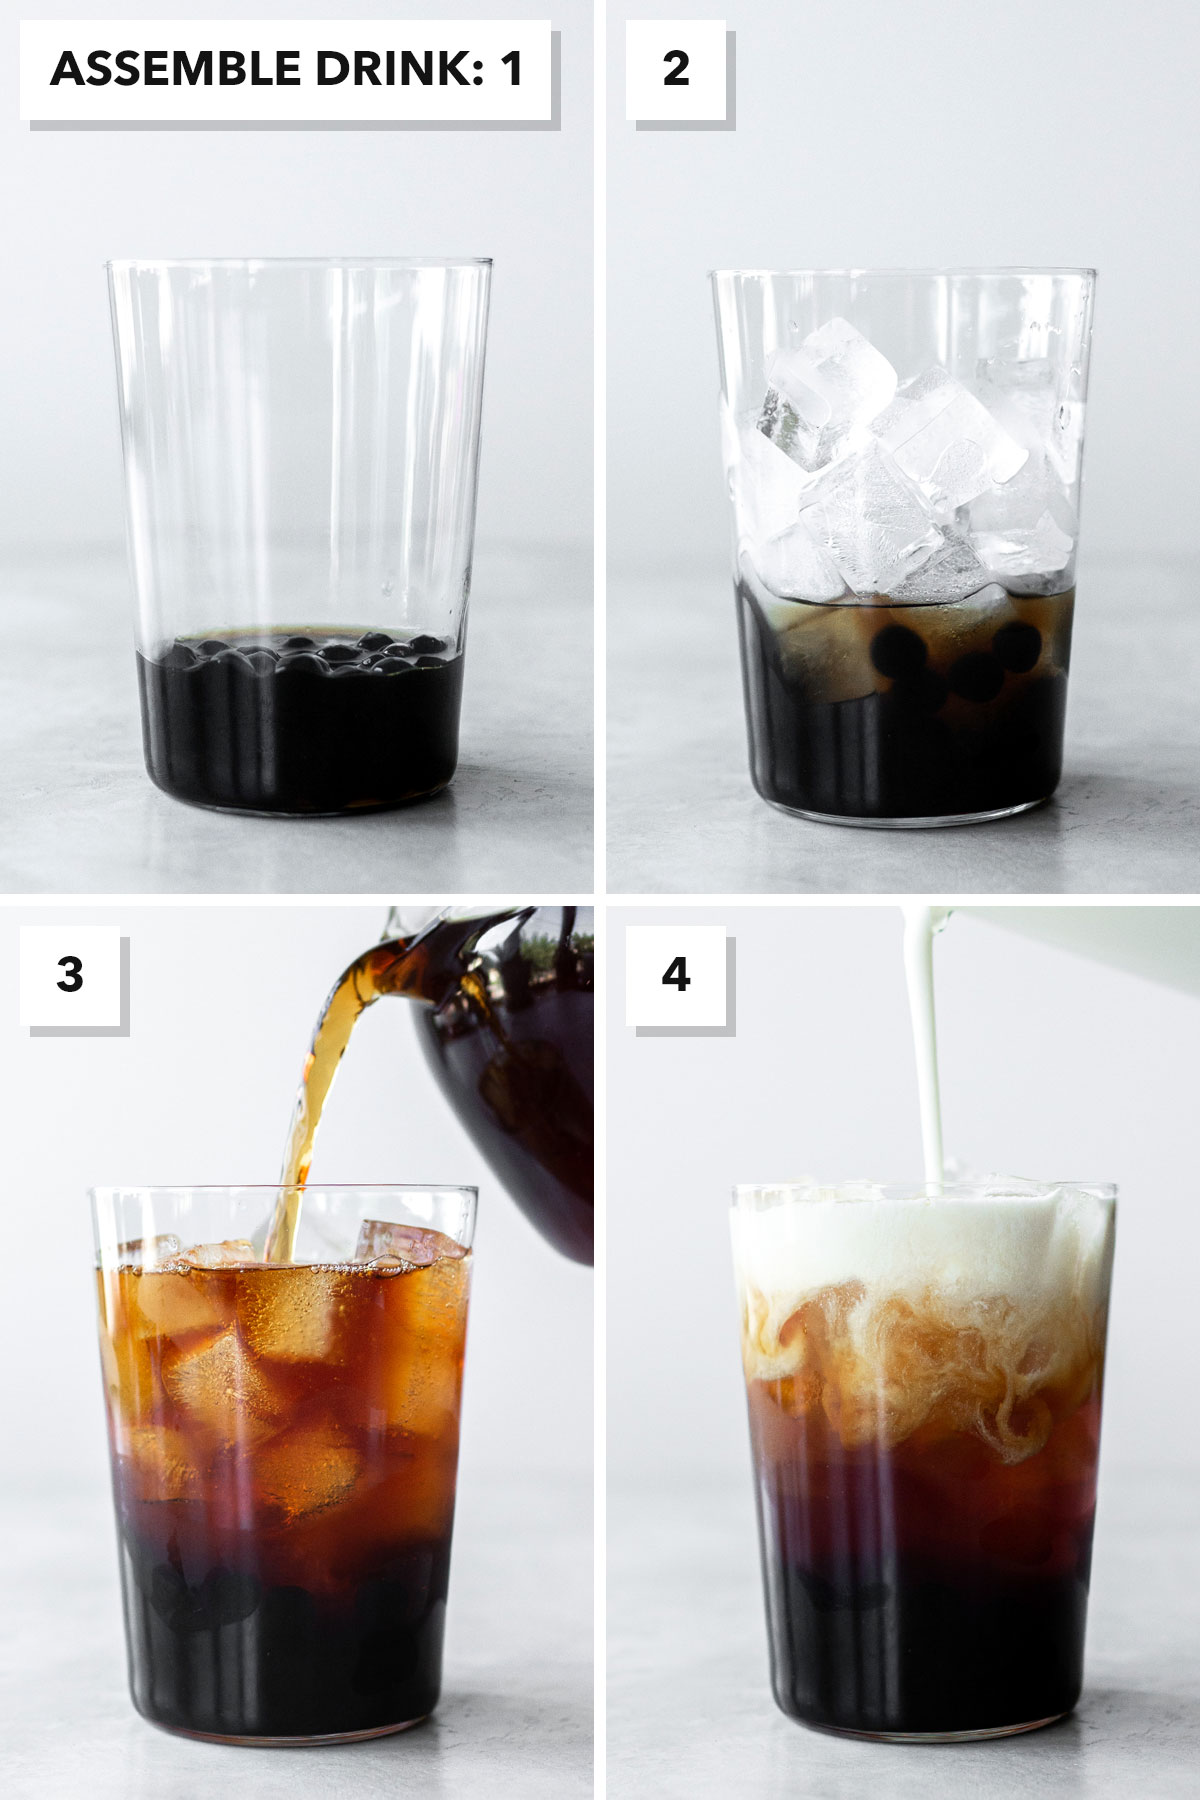 Four photo collage showing bubble tea being assembled in a glass.